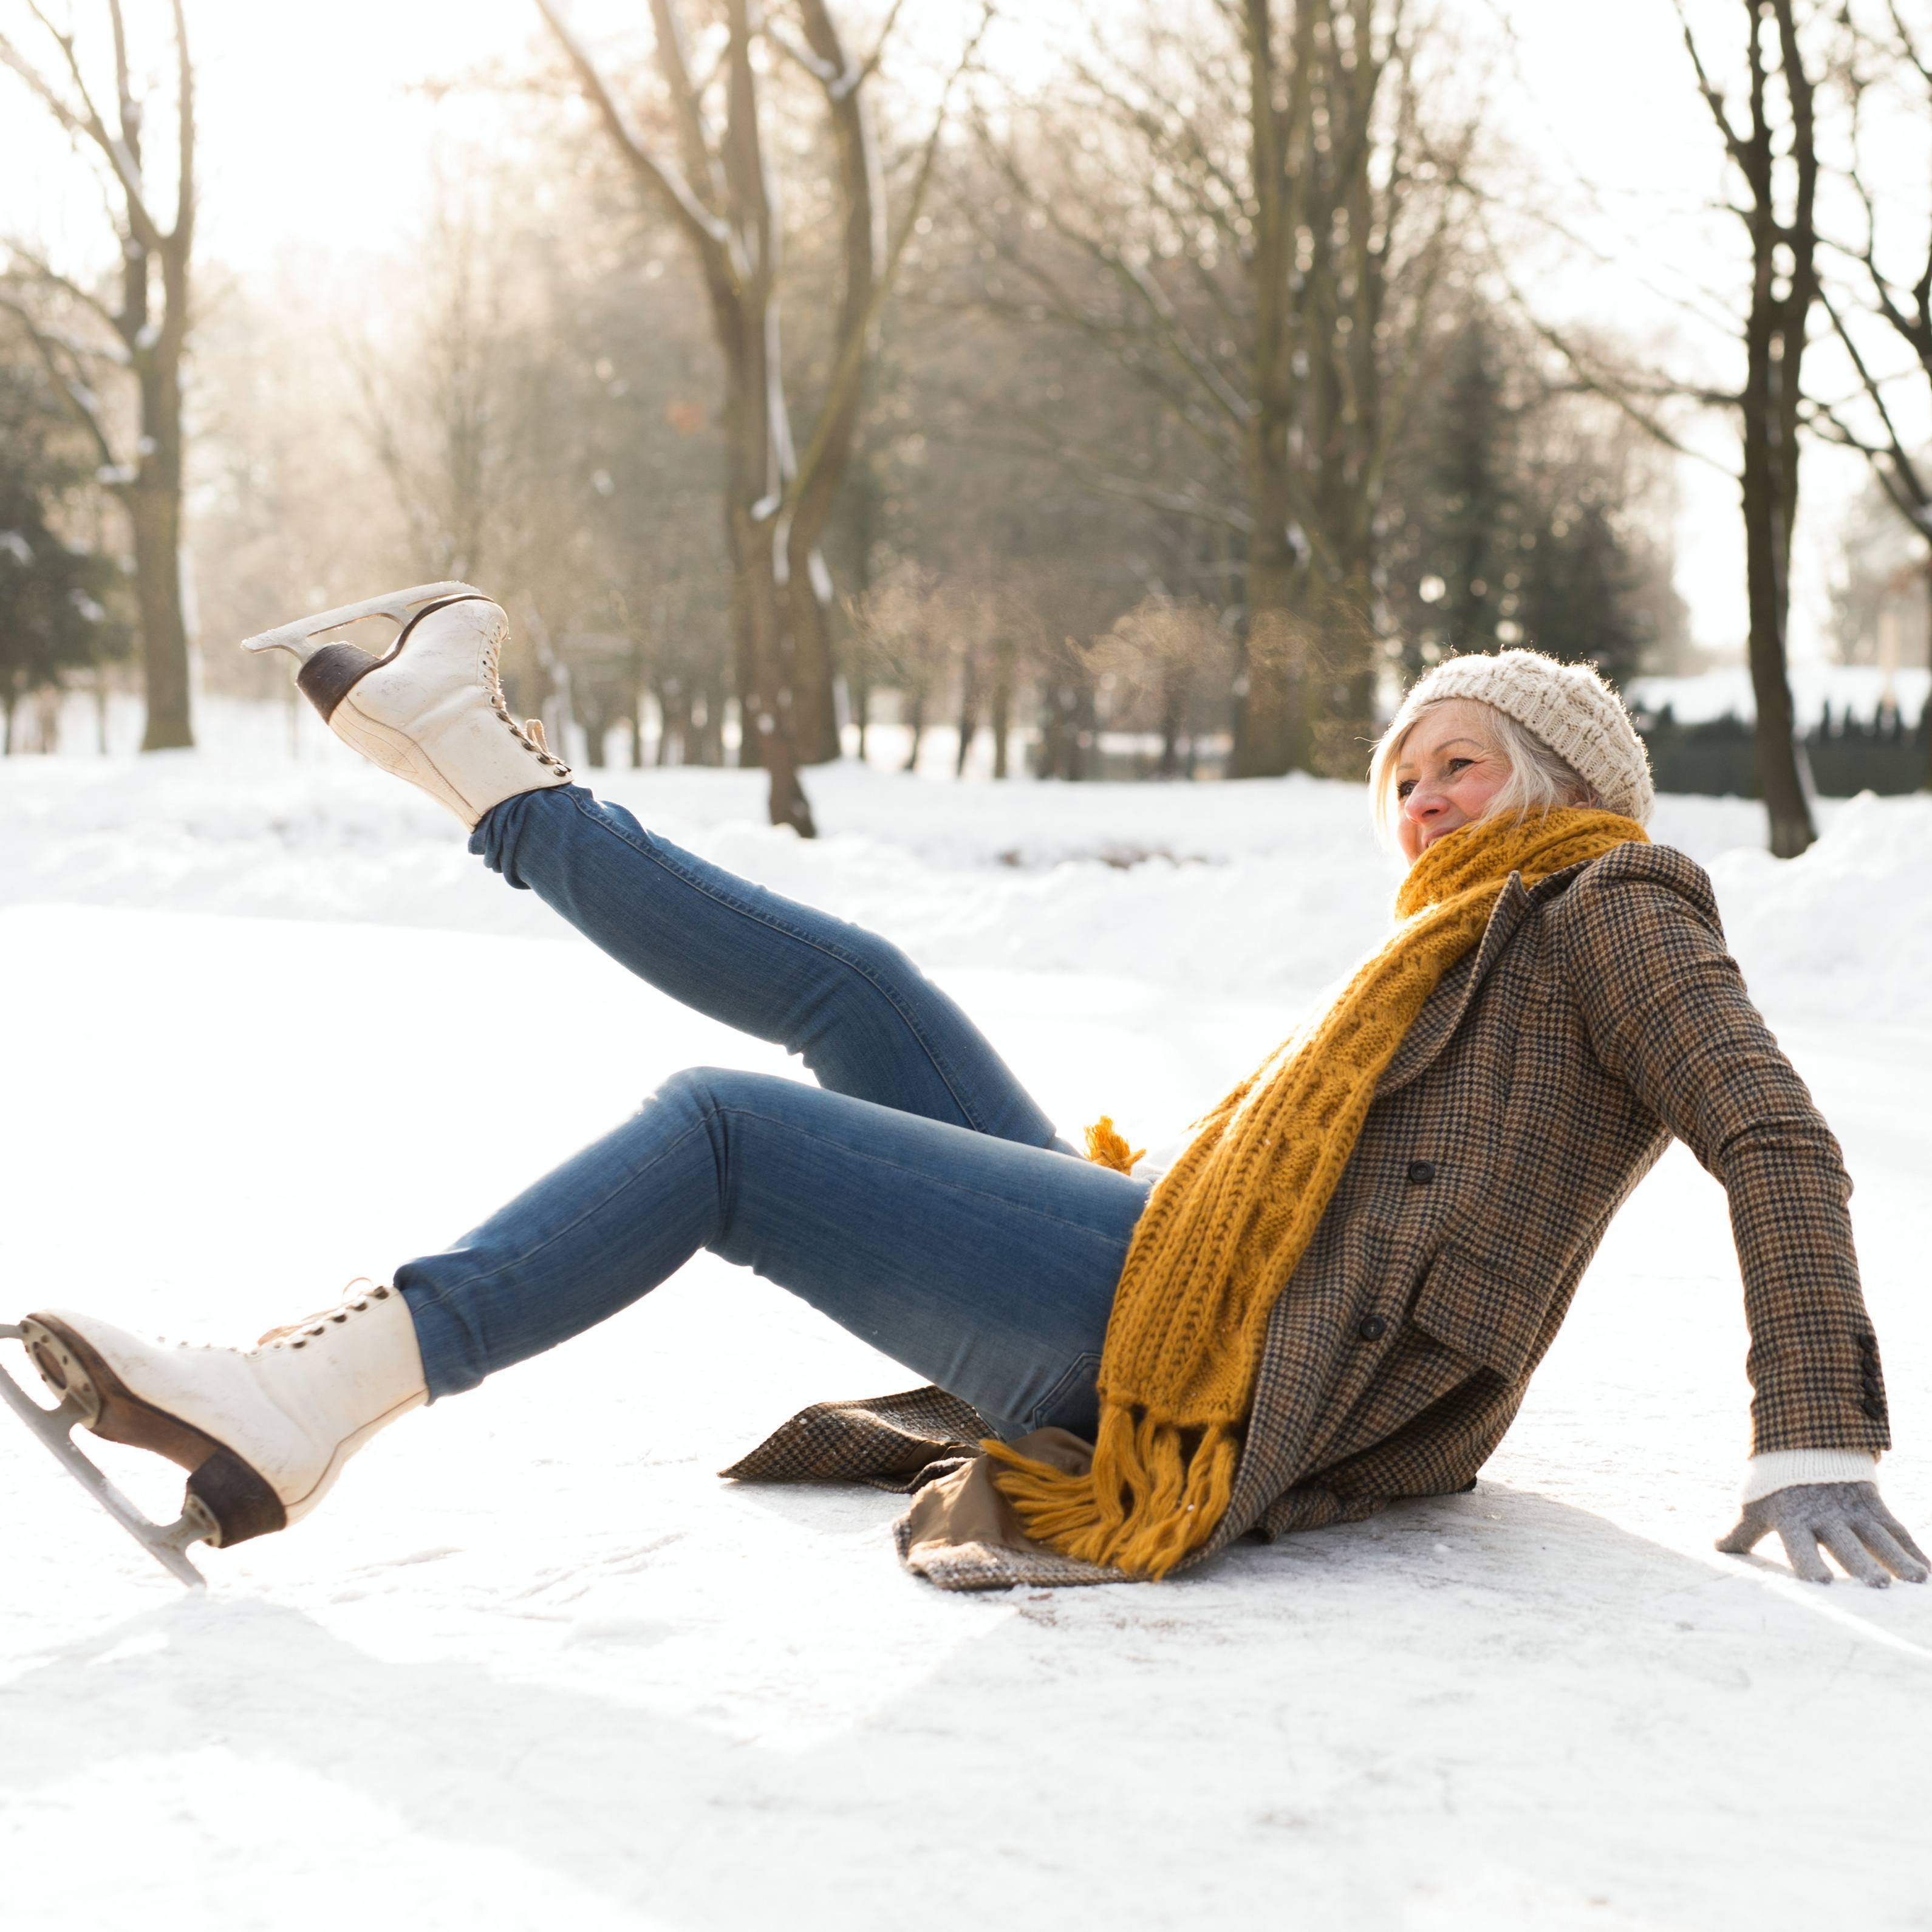 a woman with ice skates slipping andfalling on the ice in winter